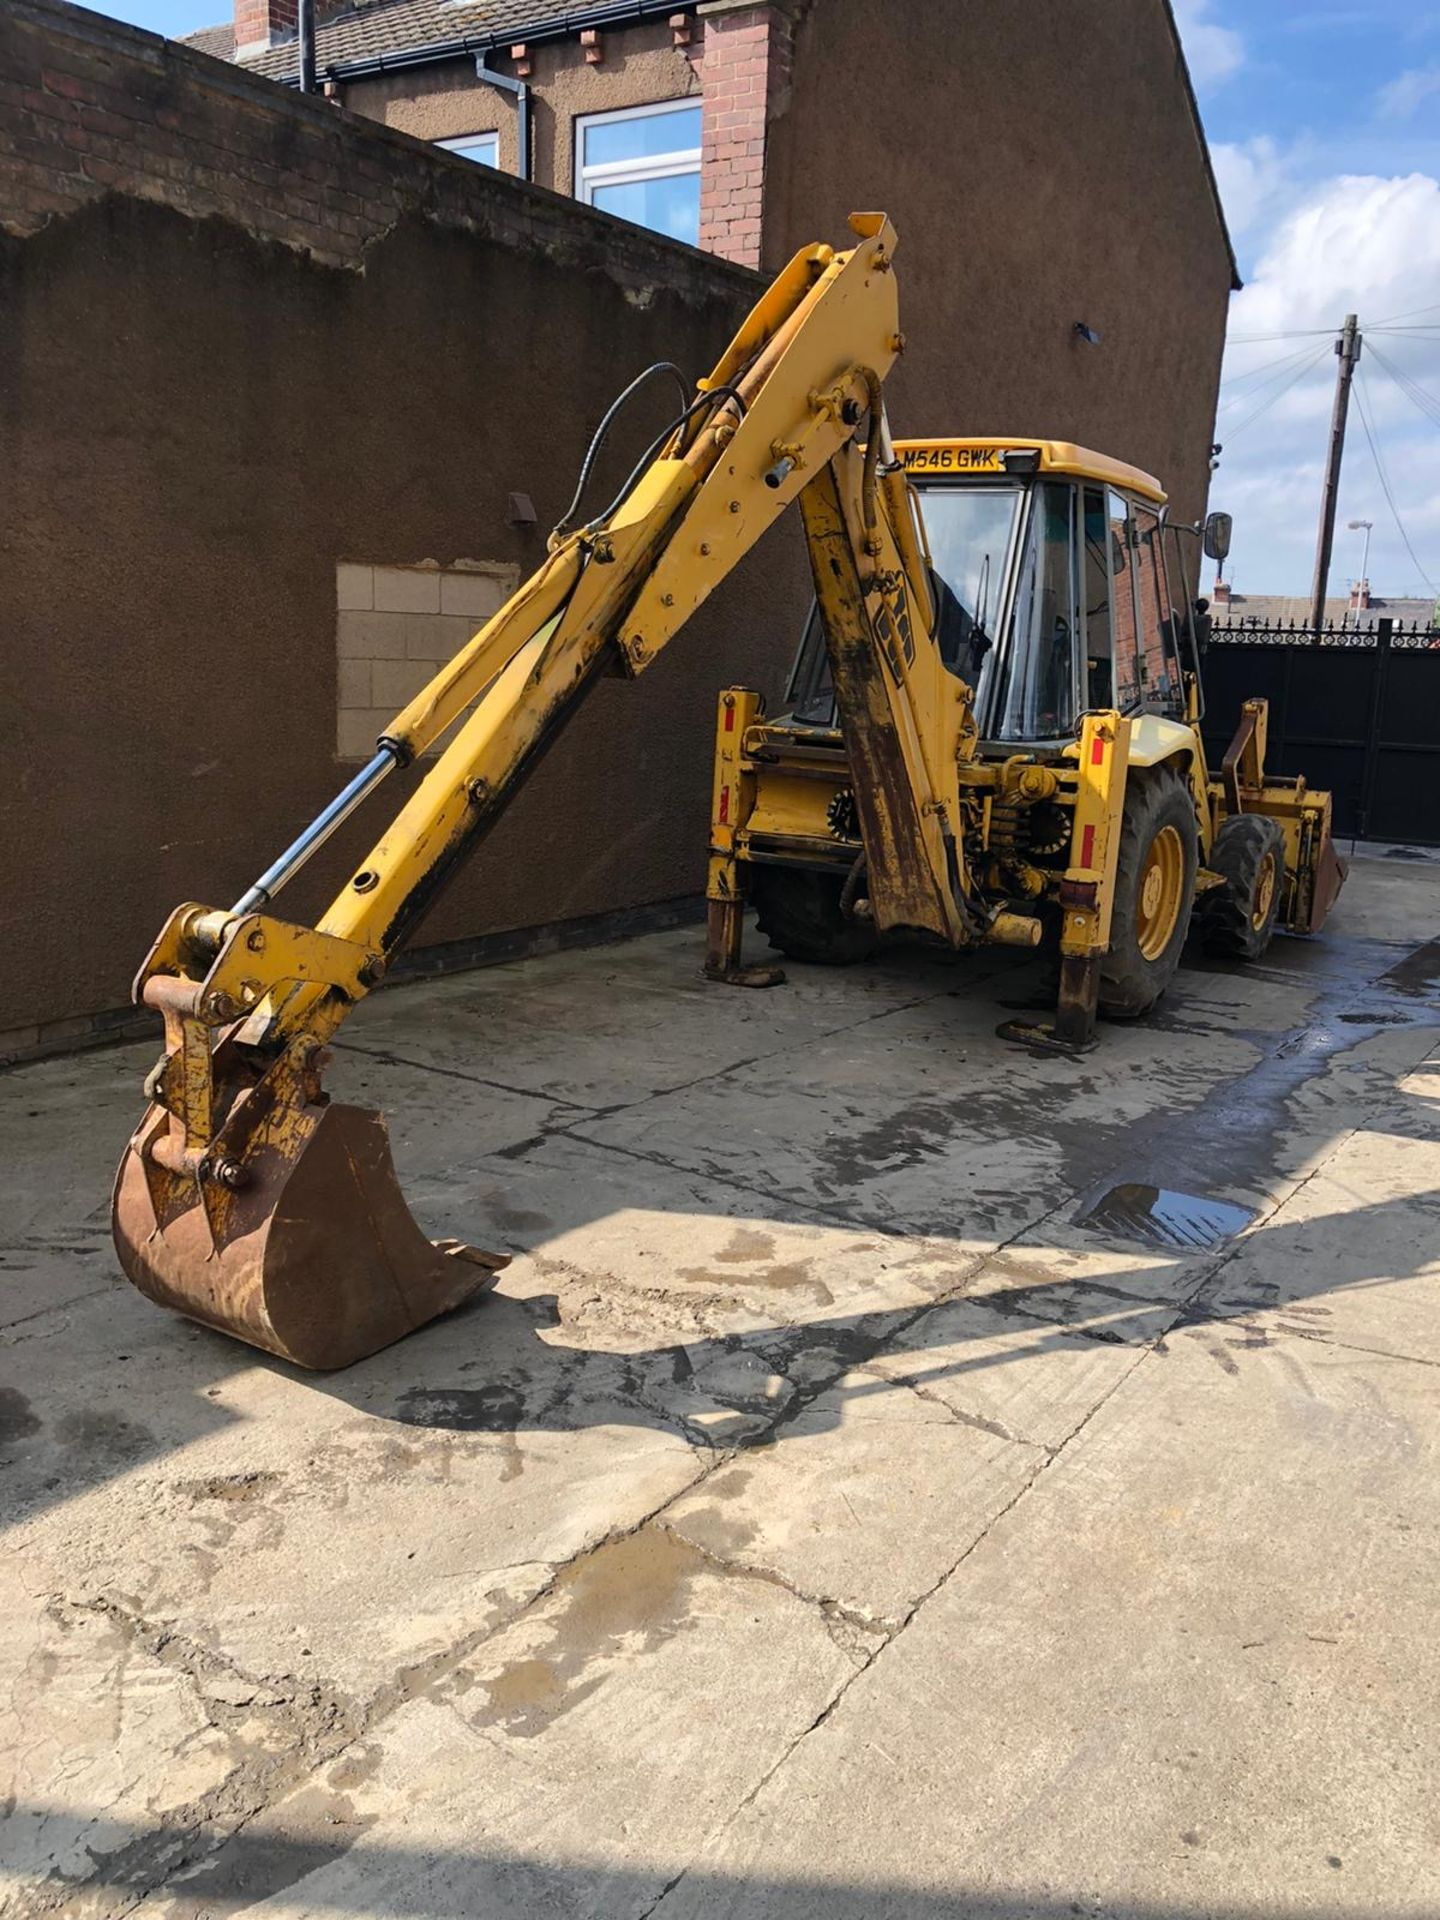 JCB 3CX PROJECT 8 DIGGER, 4X4, EXTRA DIG, C/W 3 BUCKETS, HOURS FROM NEW 7434 ONLY *NO VAT* - Image 4 of 16